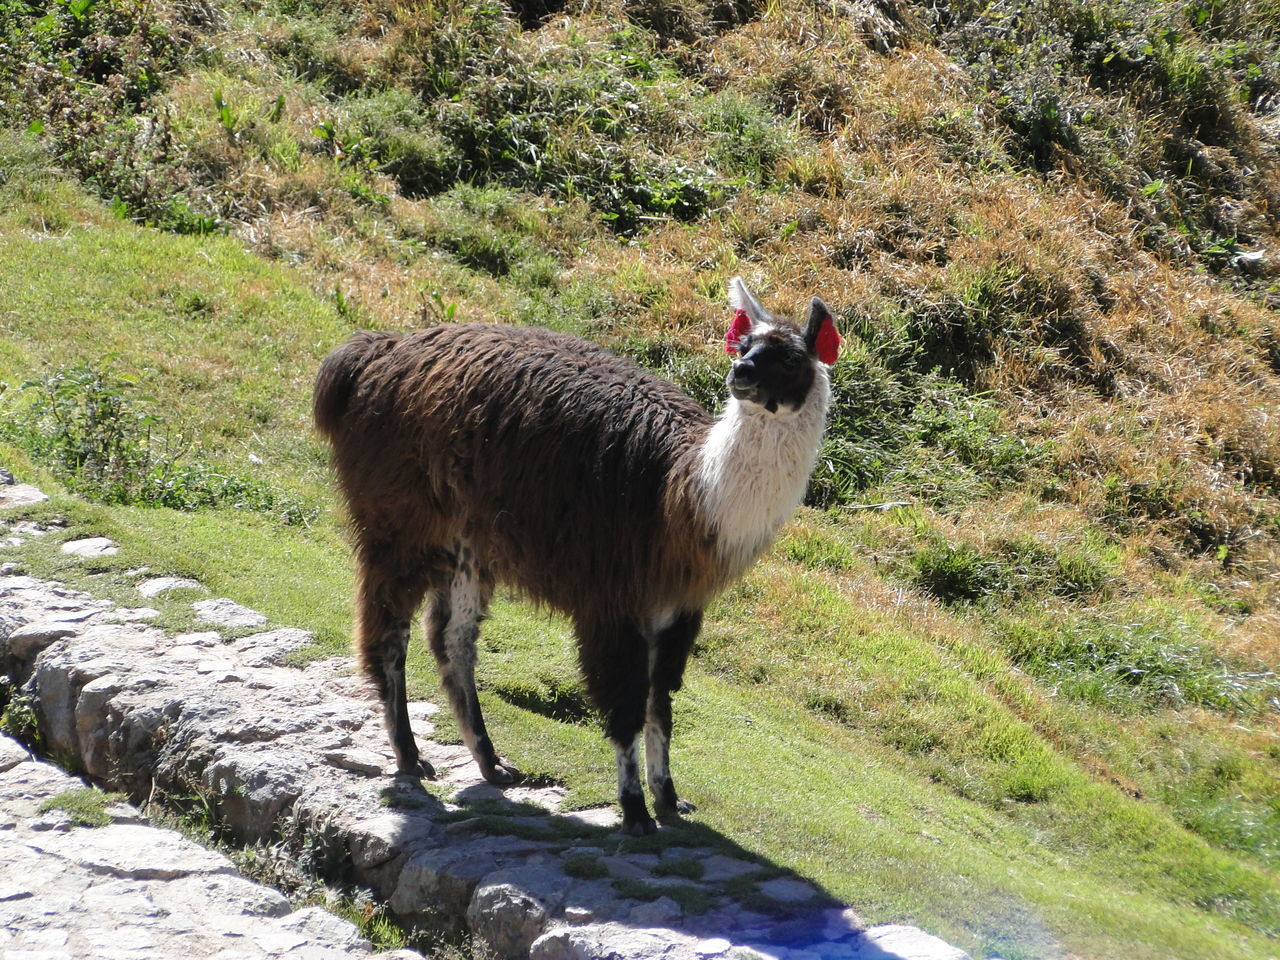 animal themes, mammal, domestic animals, one animal, grass, livestock, no people, day, nature, field, green color, outdoors, llama, standing, plant, beauty in nature